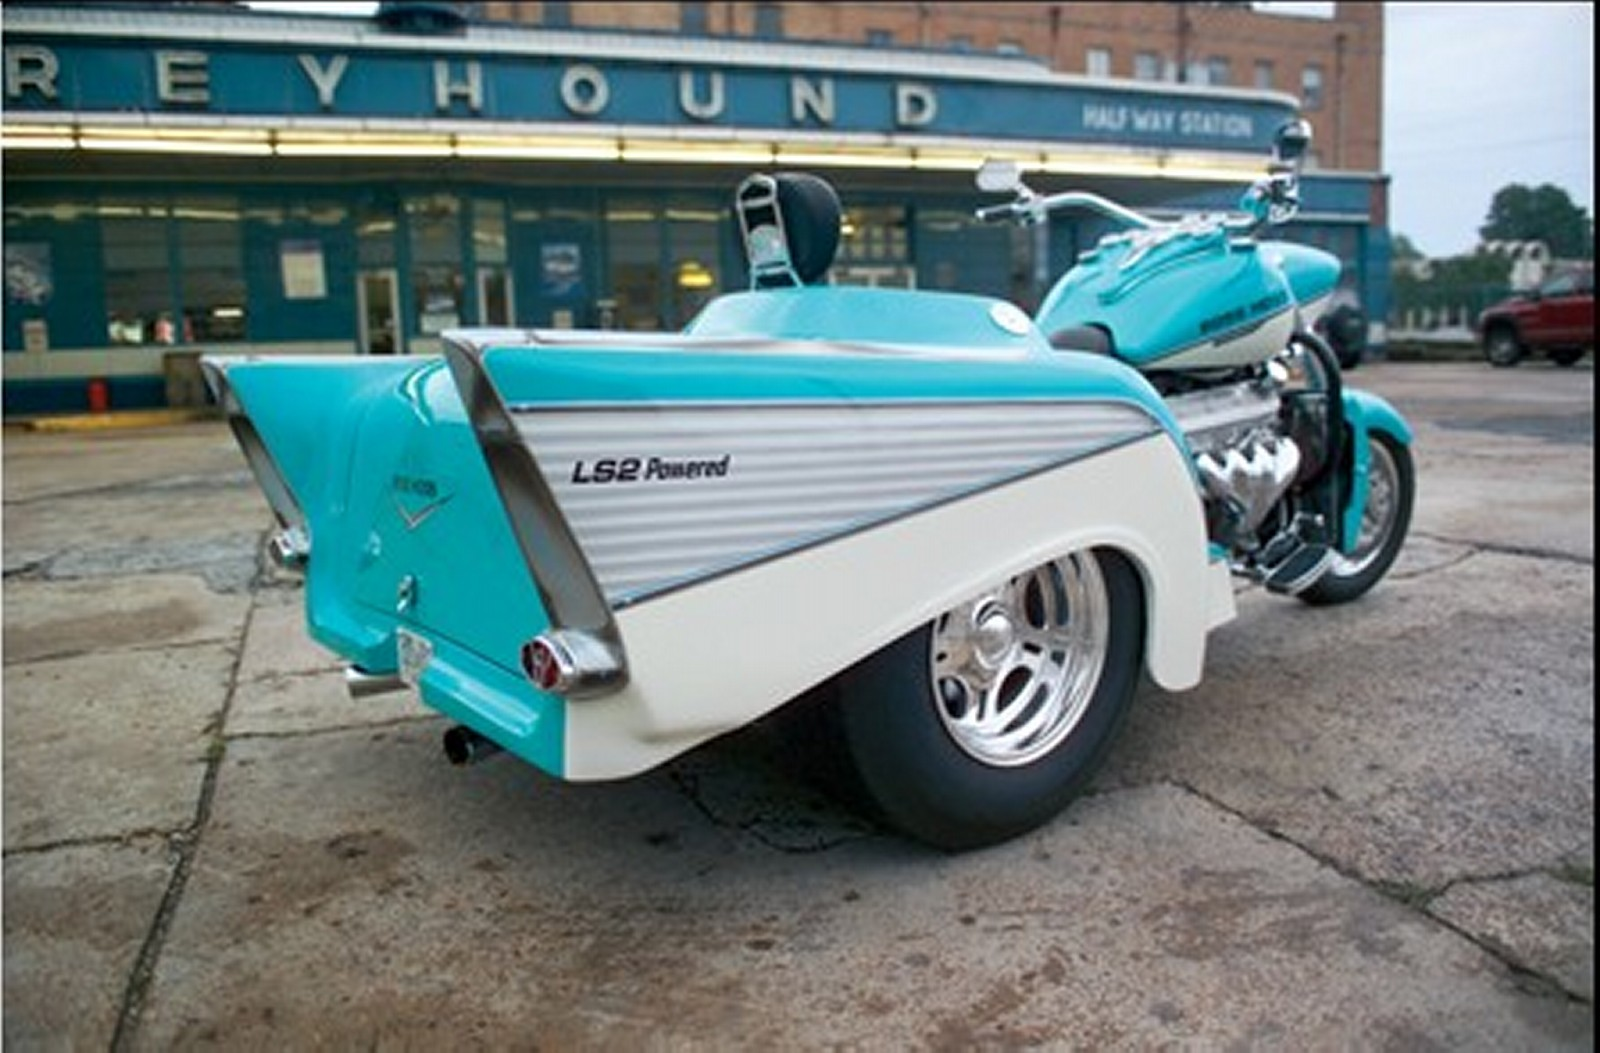 Boss Hog Motorcycle Trikes : Motorcycle pictures boss hoss bhc ls